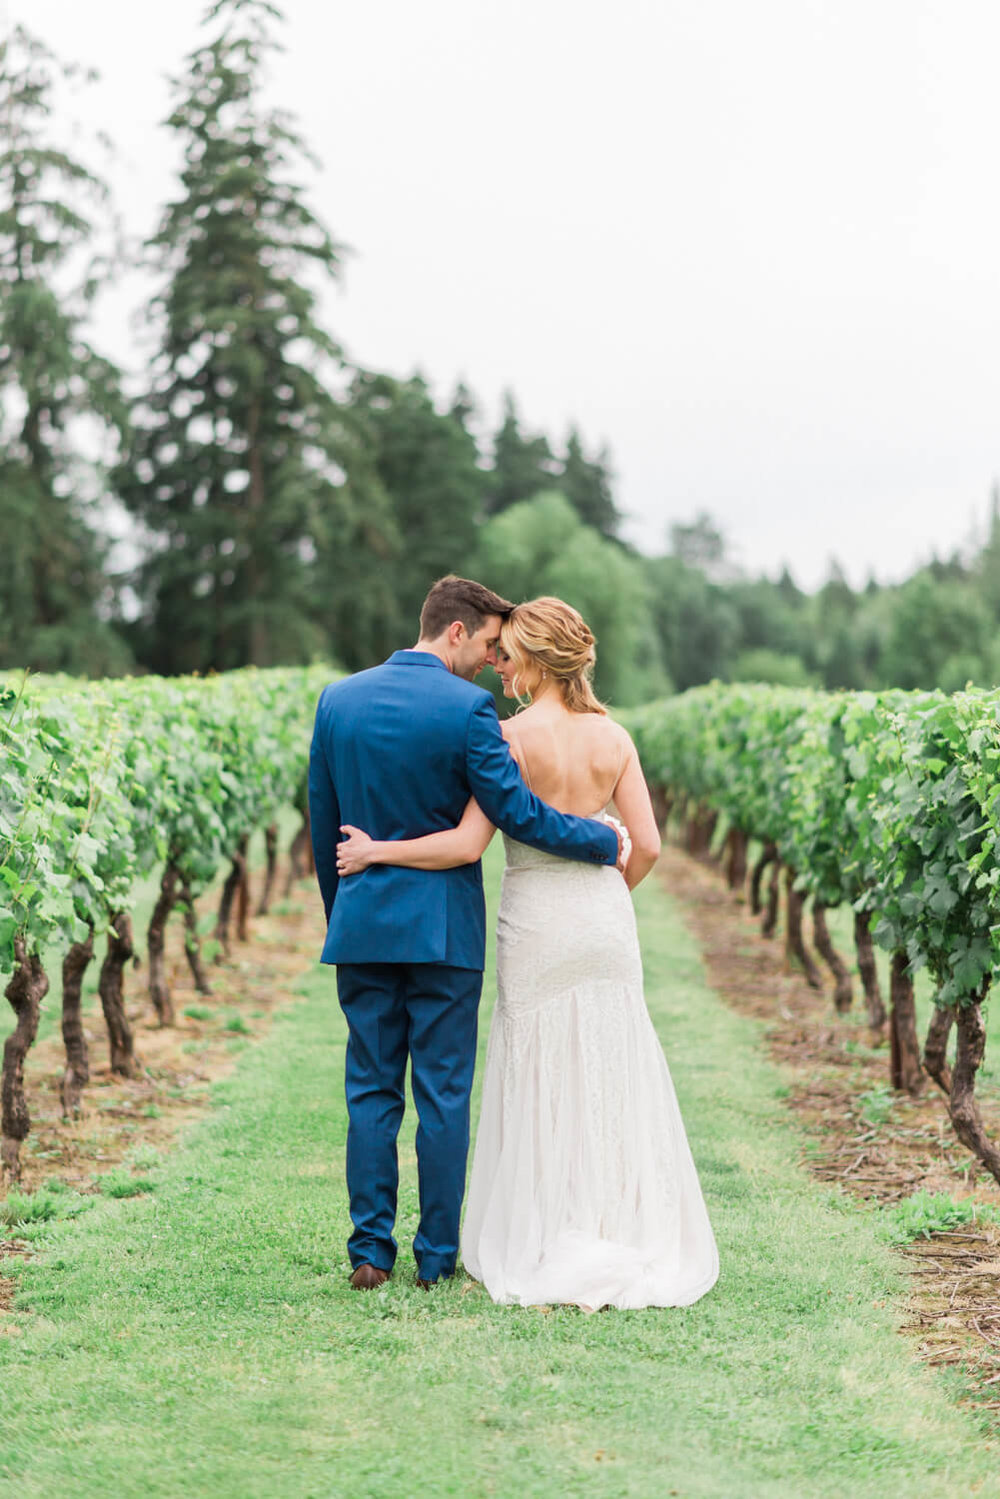 portland-wedding-photography-bethany-vineyard-shelley-marie-photo-012.jpg